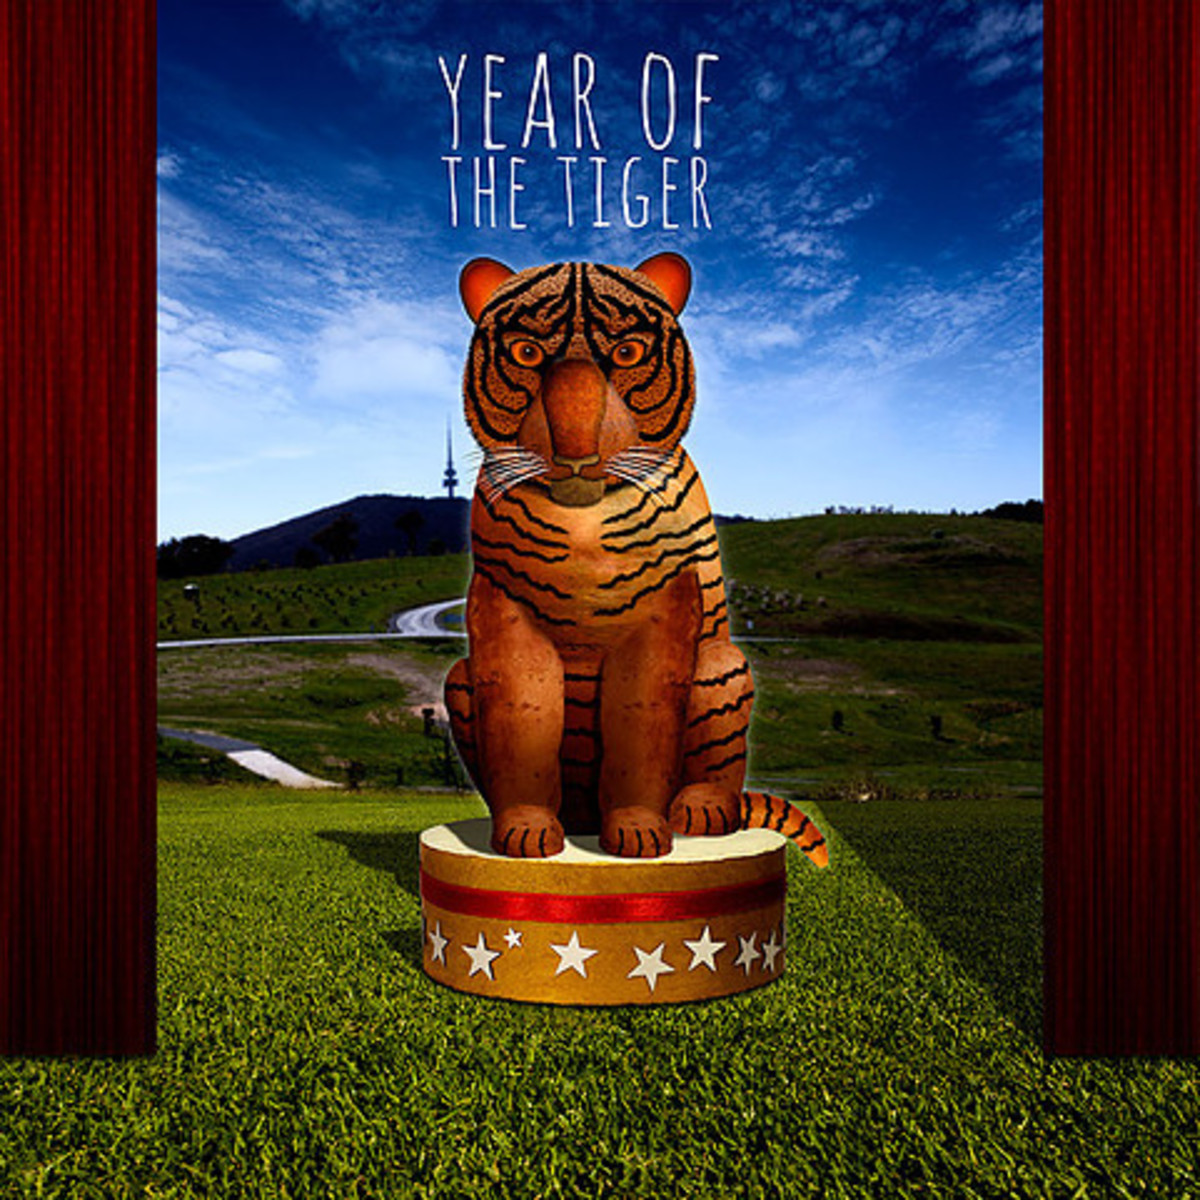 Carrie Webster - The Year of The Tiger